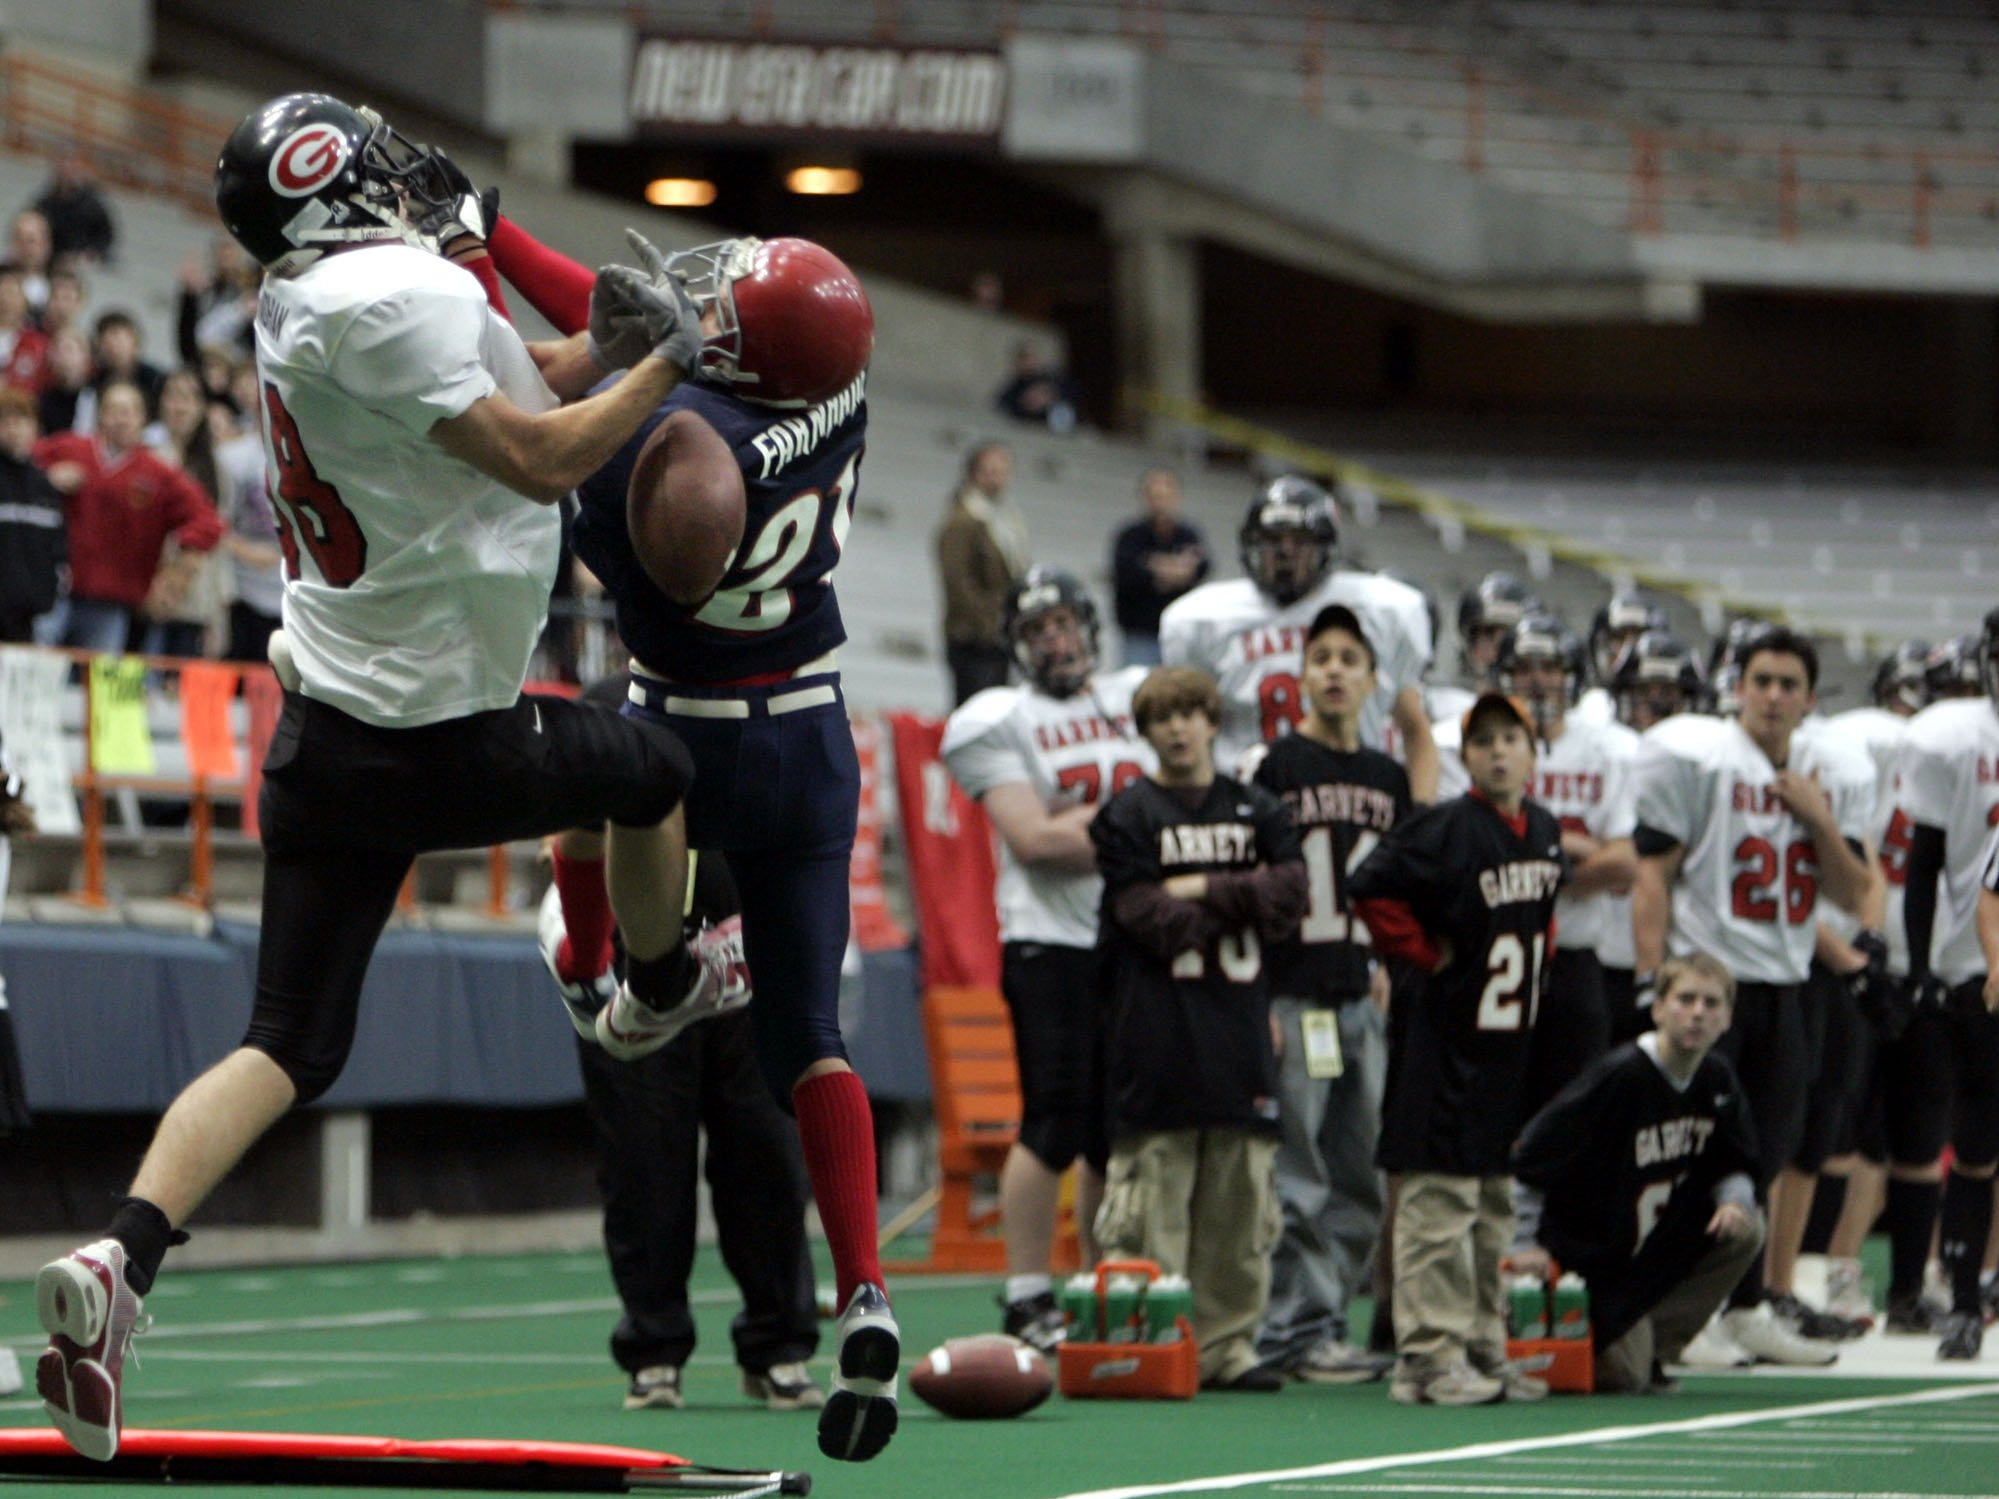 Rye's Tim Monaghan (88) can't pull in a pass as Chenango Forks' Ben Farnham (21) knocks the ball away in the final seconds of the second quarter during the Class B State Final at the Carrier Dome in Syracuse, N.Y. Nov. 26, 2004. Chenango Forks won, 48-0.